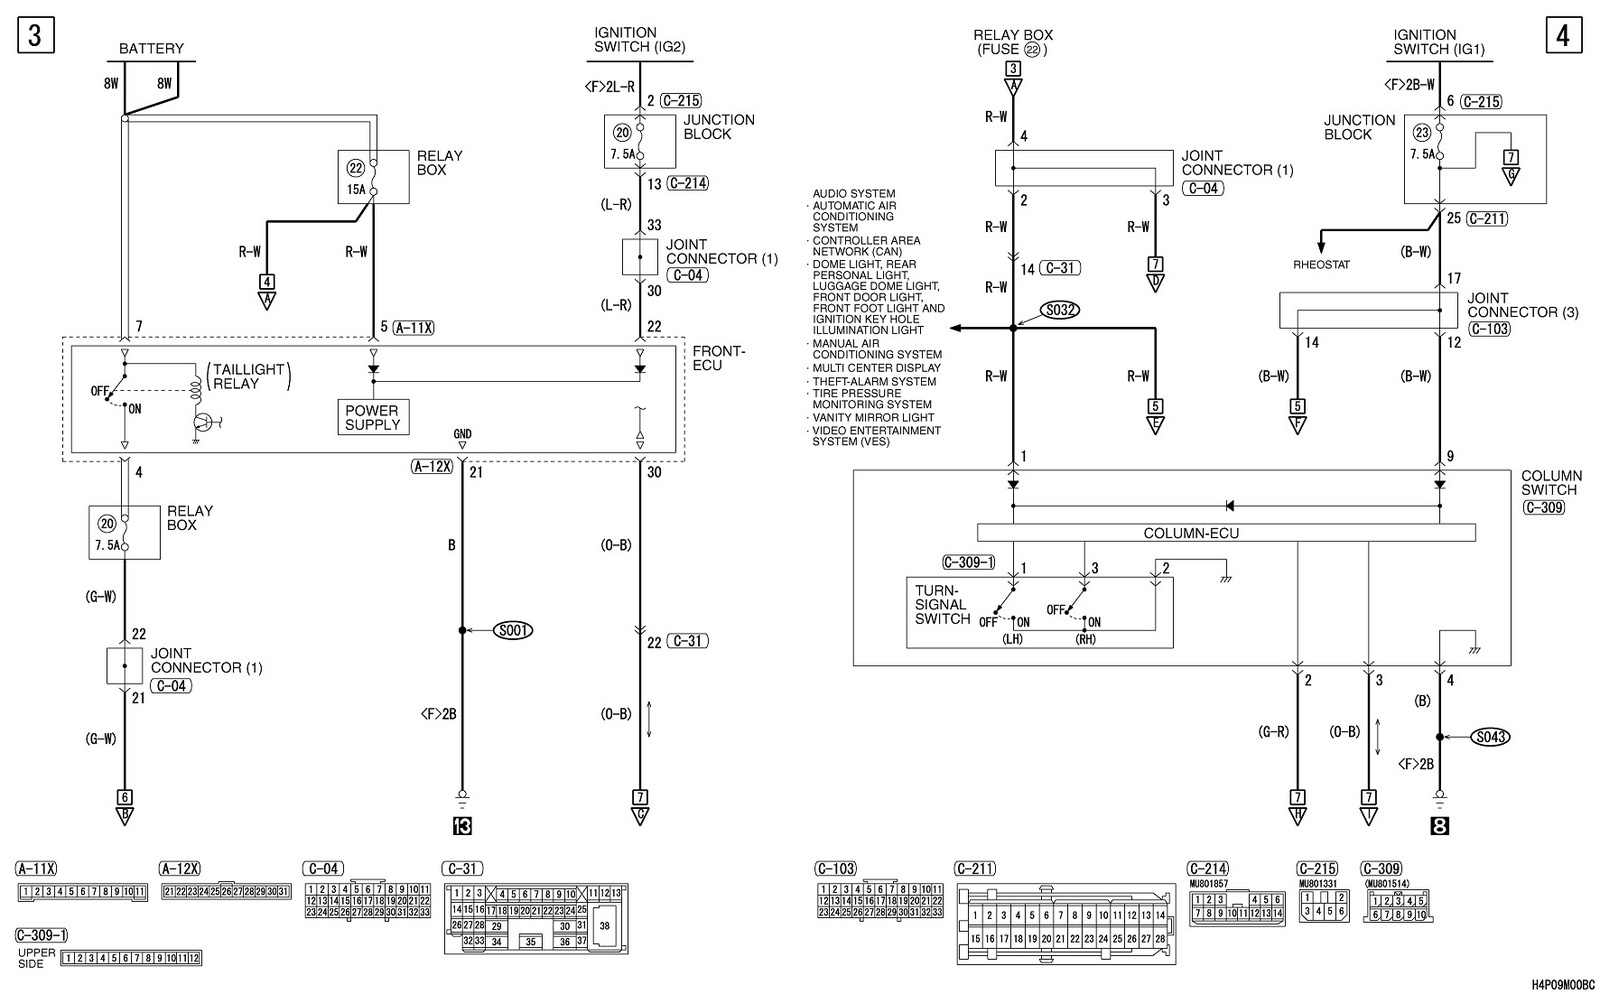 Mitsubishi Charging System Diagram Library Of Wiring Honeywell L4064b2210 Images Gallery